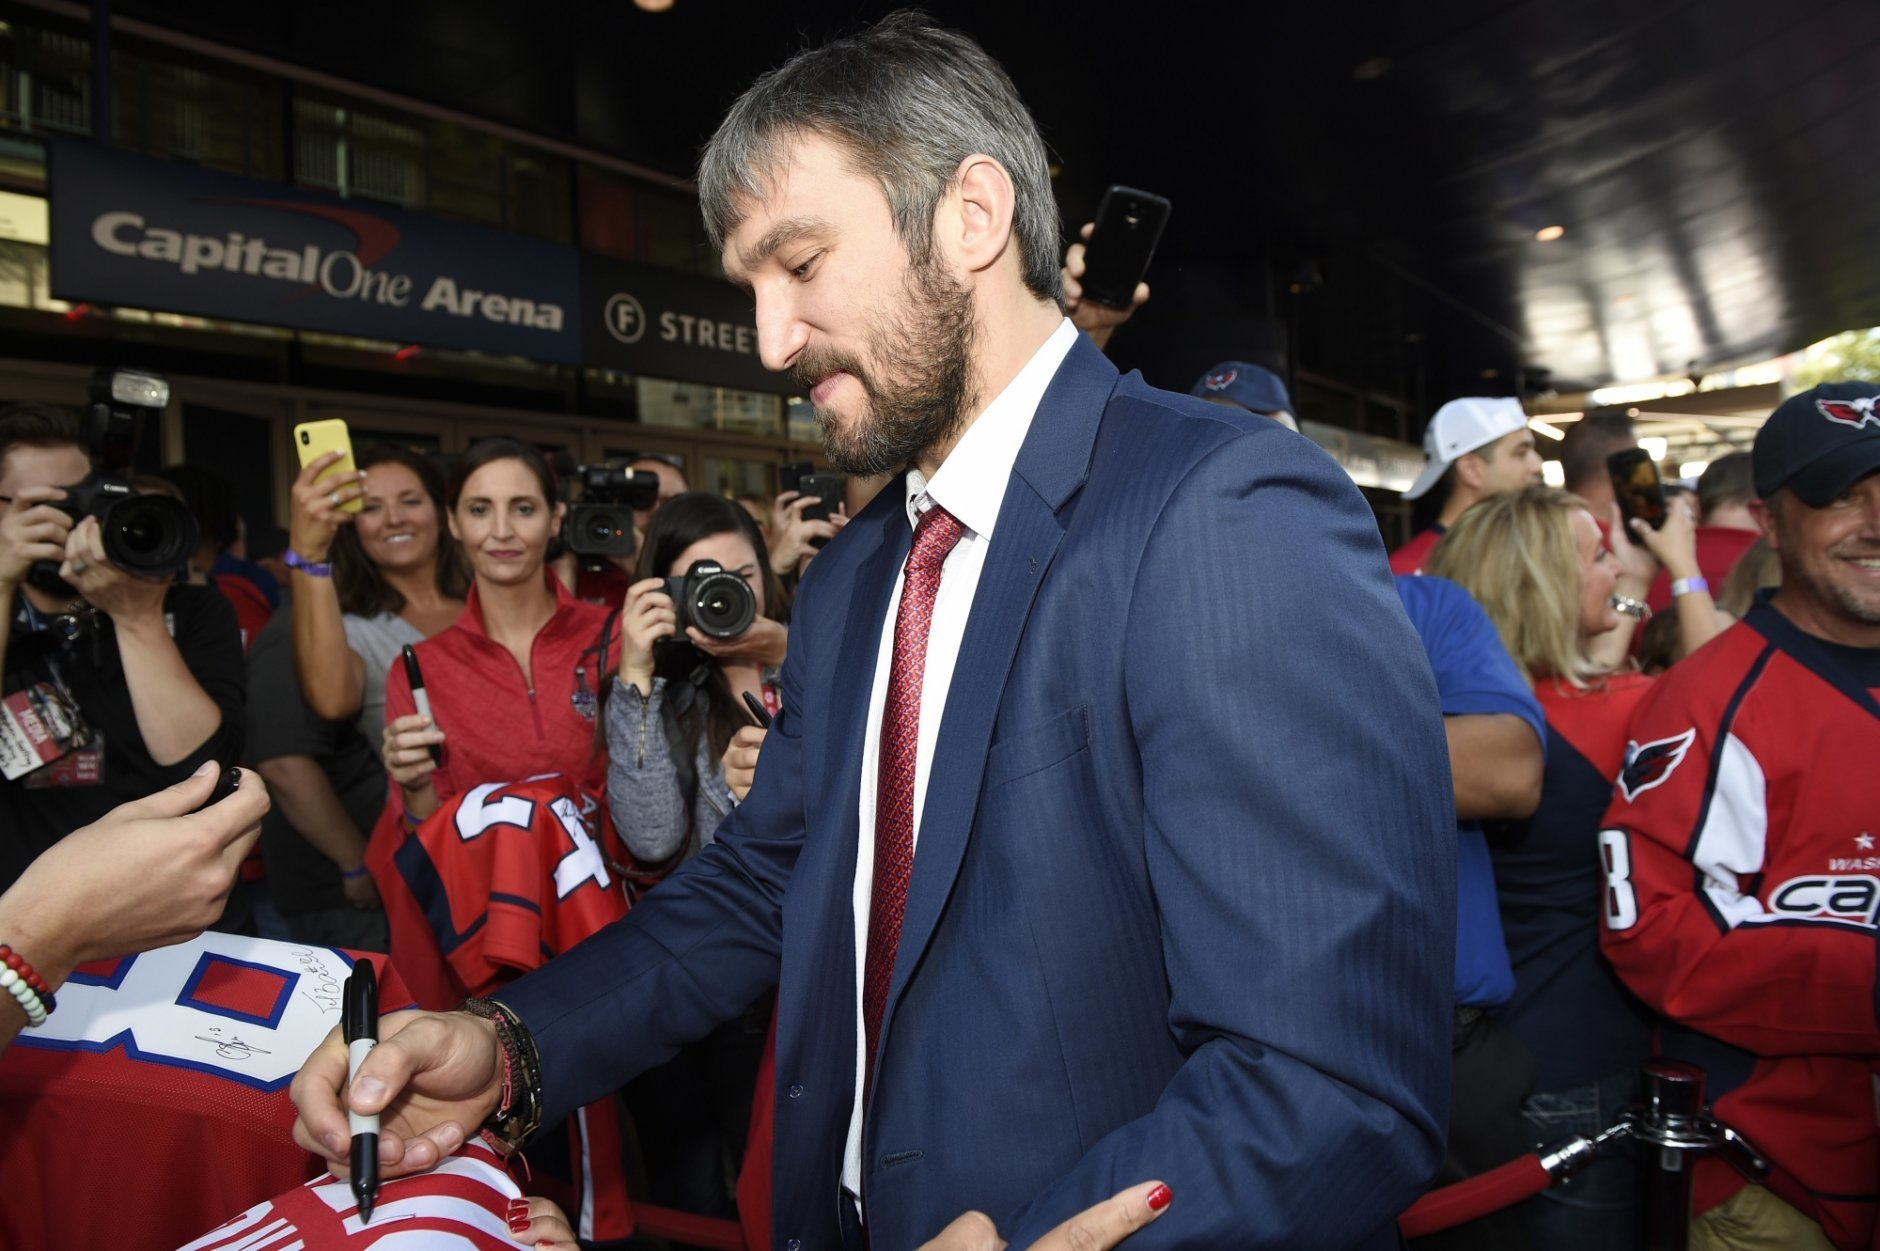 c76cad10 Washington Capitals' Alex Ovechkin, center, of Russia, signs for fans as he